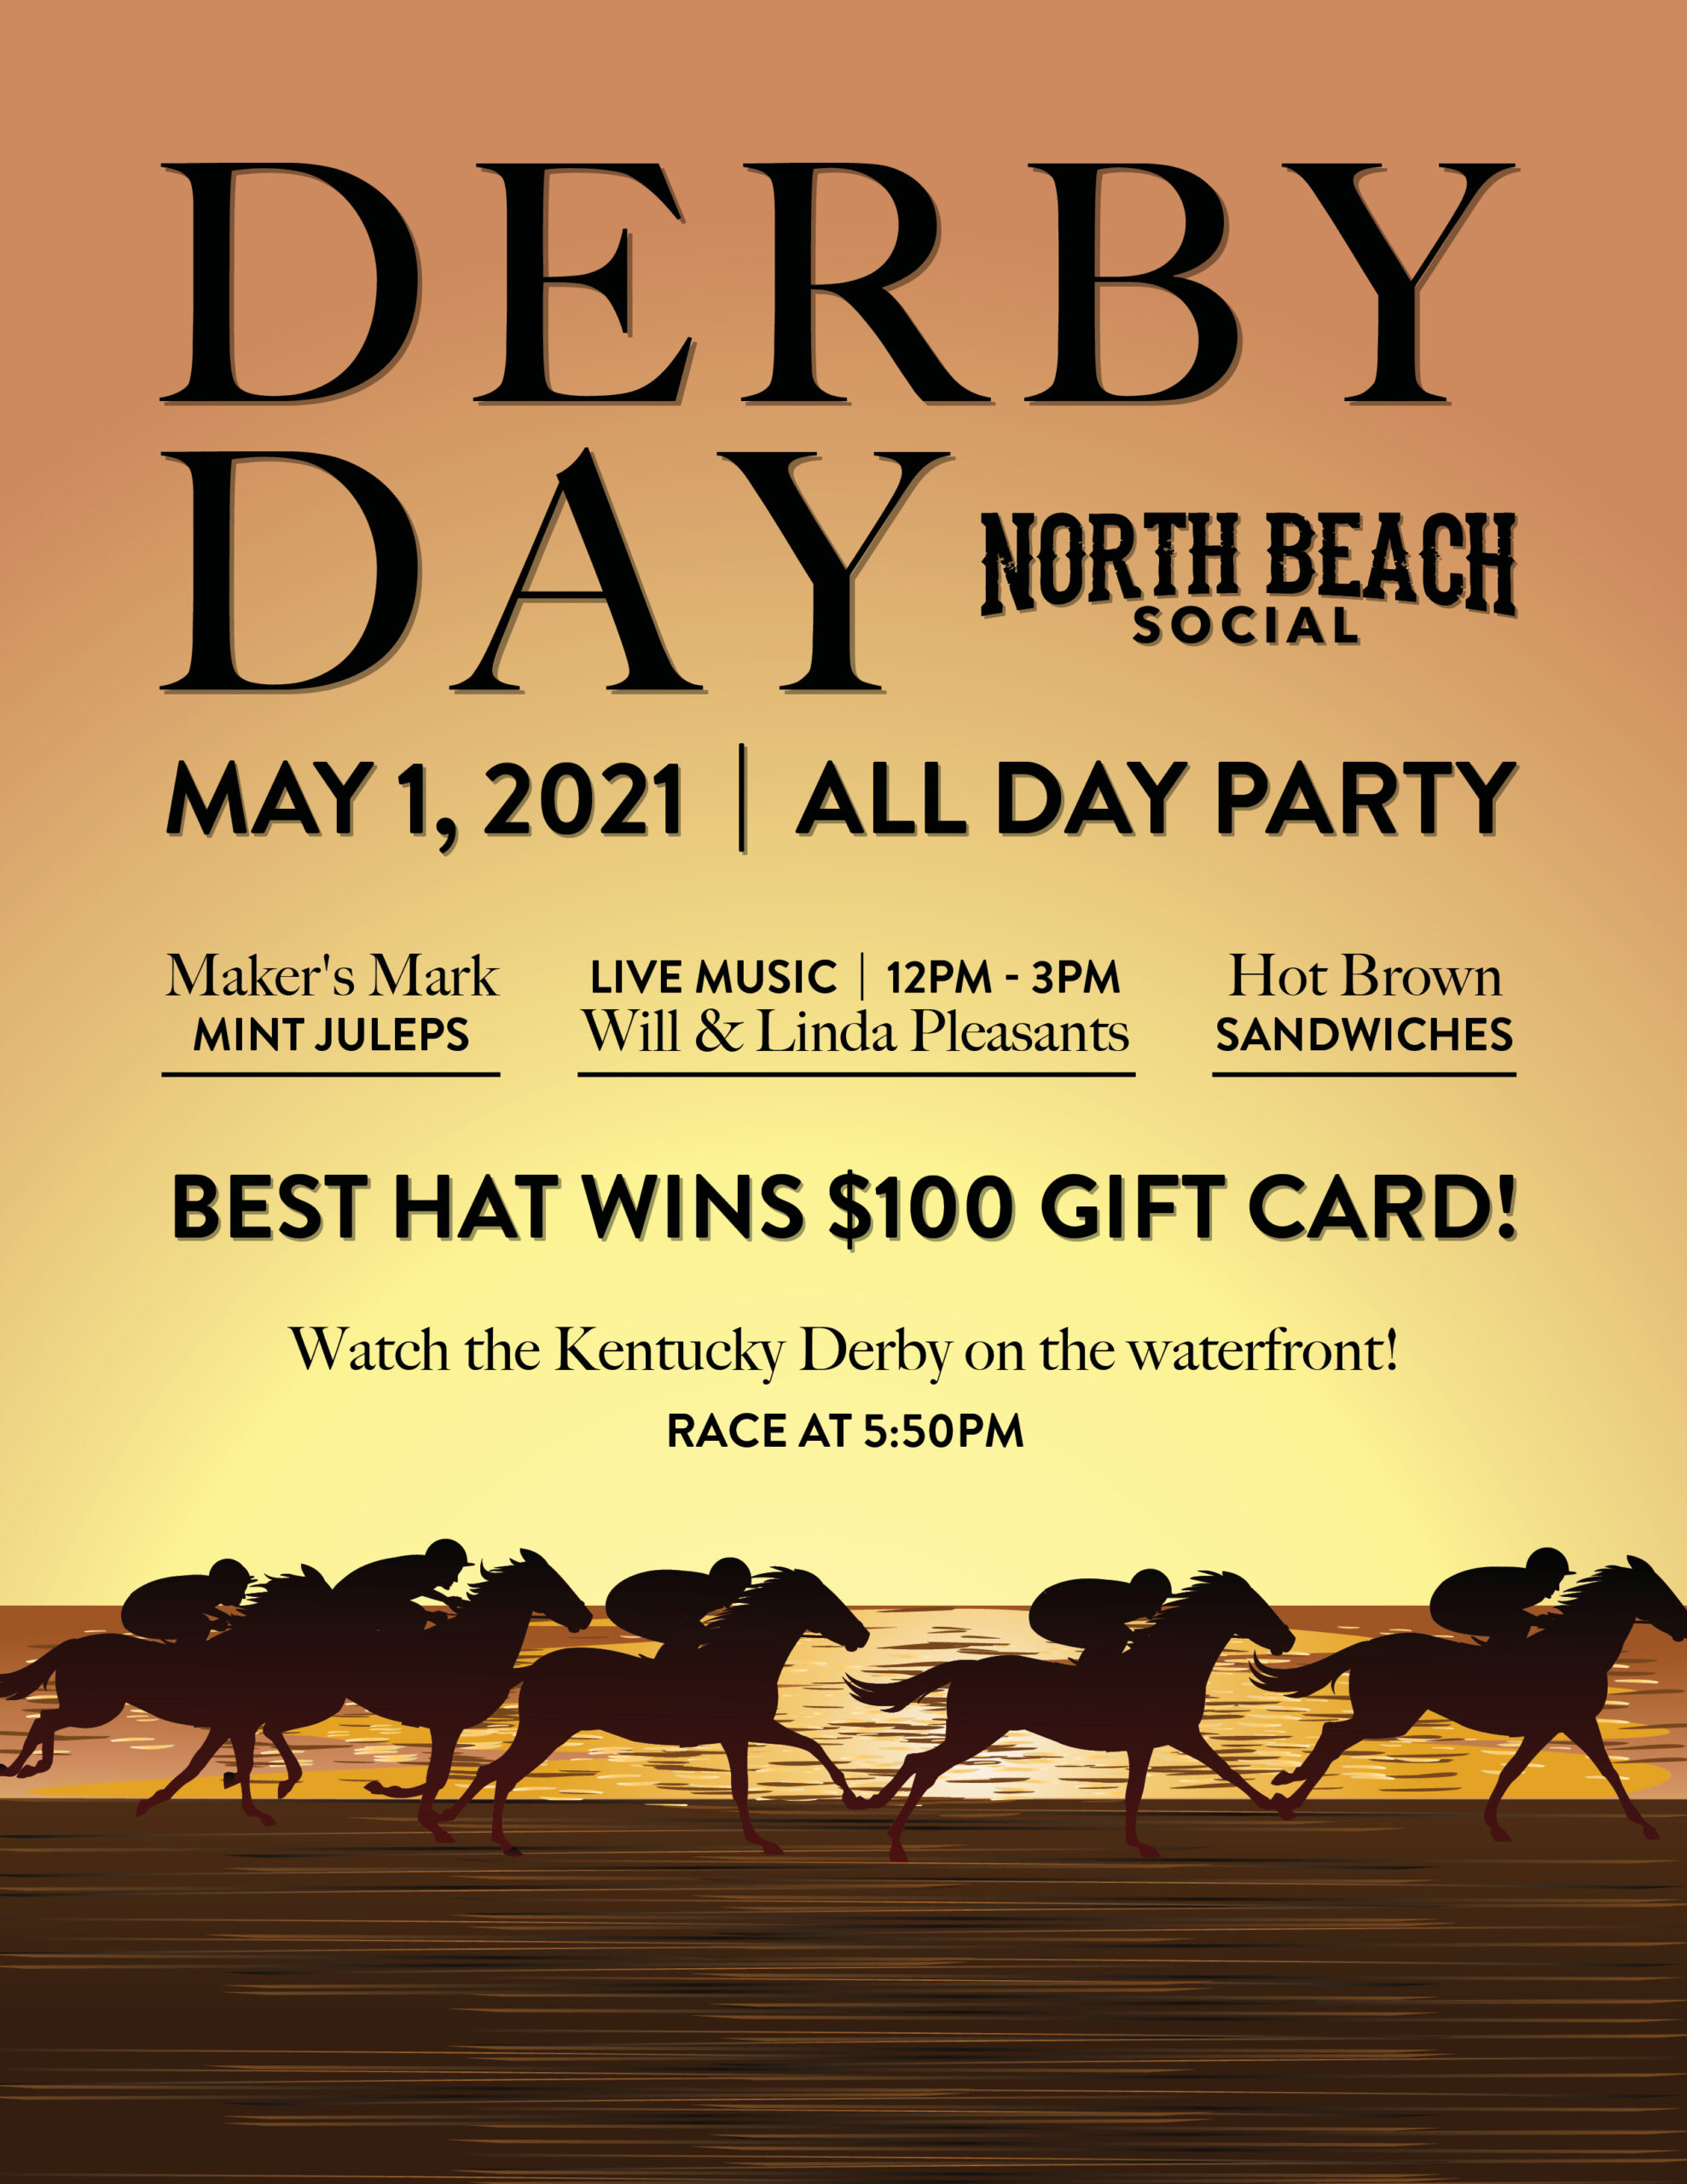 North Beach Social Hosts a Derby Party on the Waterfront